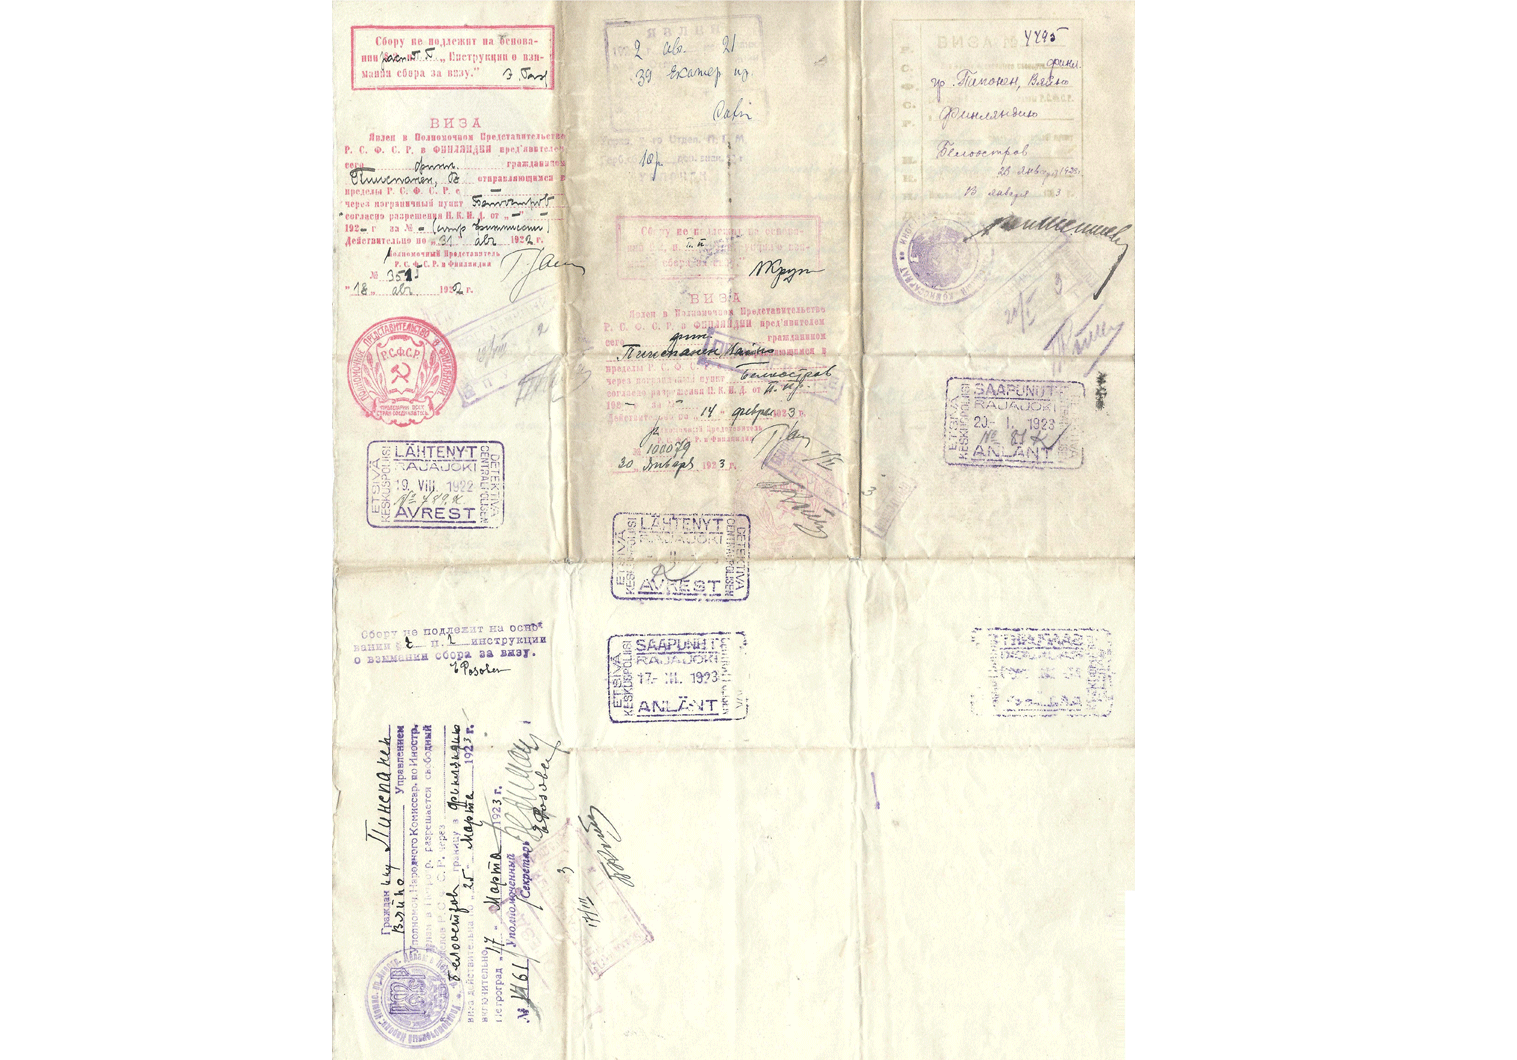 Superb early Finnish diplomatic passport